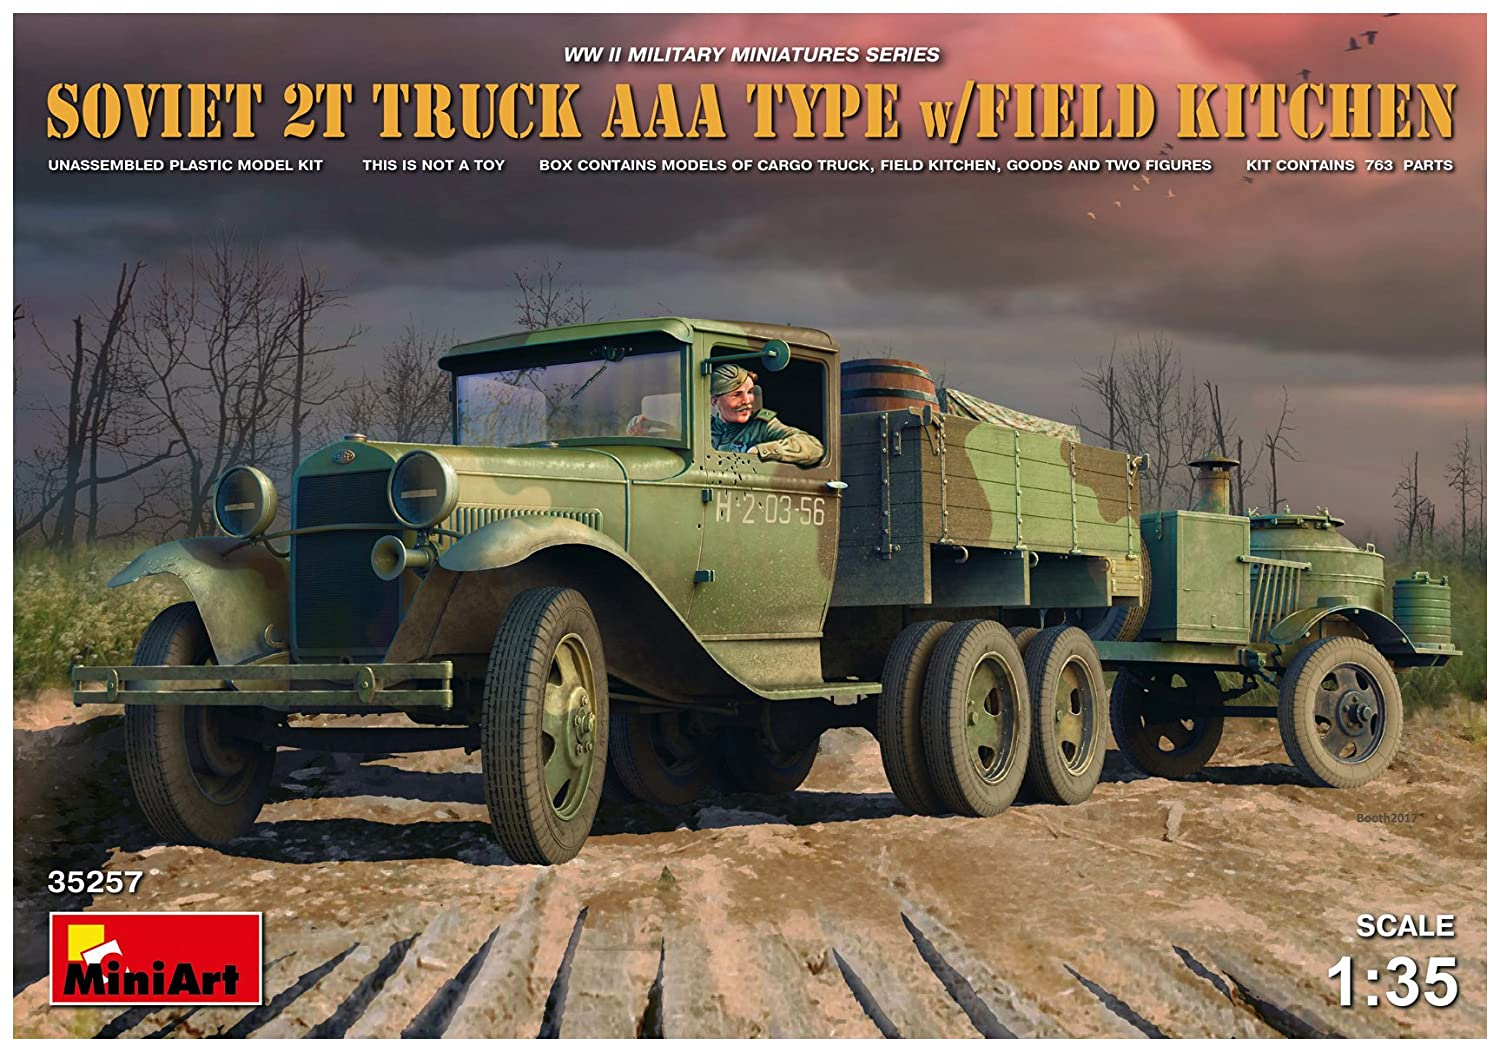 'Mini Art 35257 Model Kit Soviet T Truck 2 AAA type with Field Kitchen MiniArt